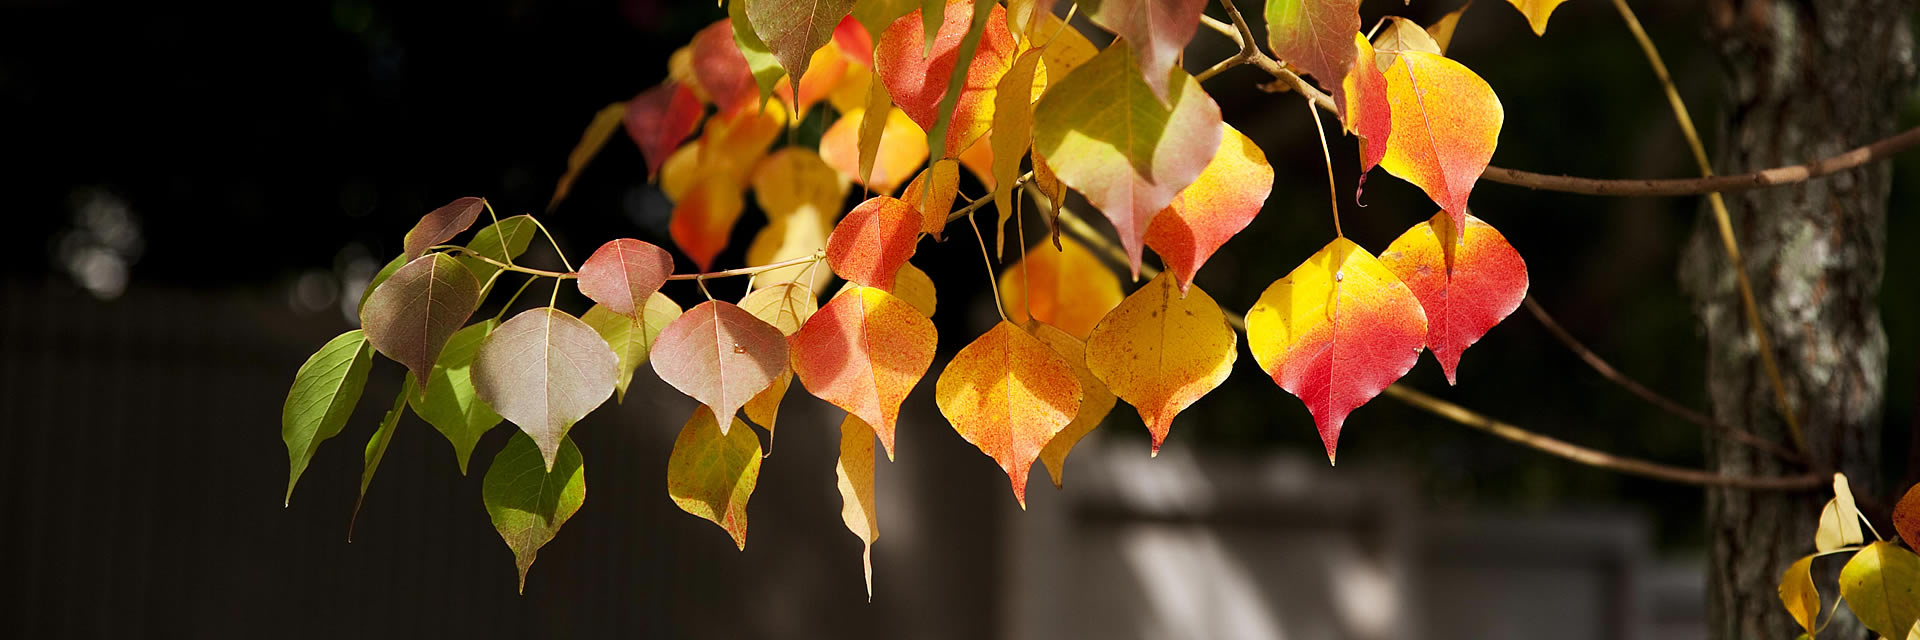 holly-forsyth-autumn-chinese-tallow